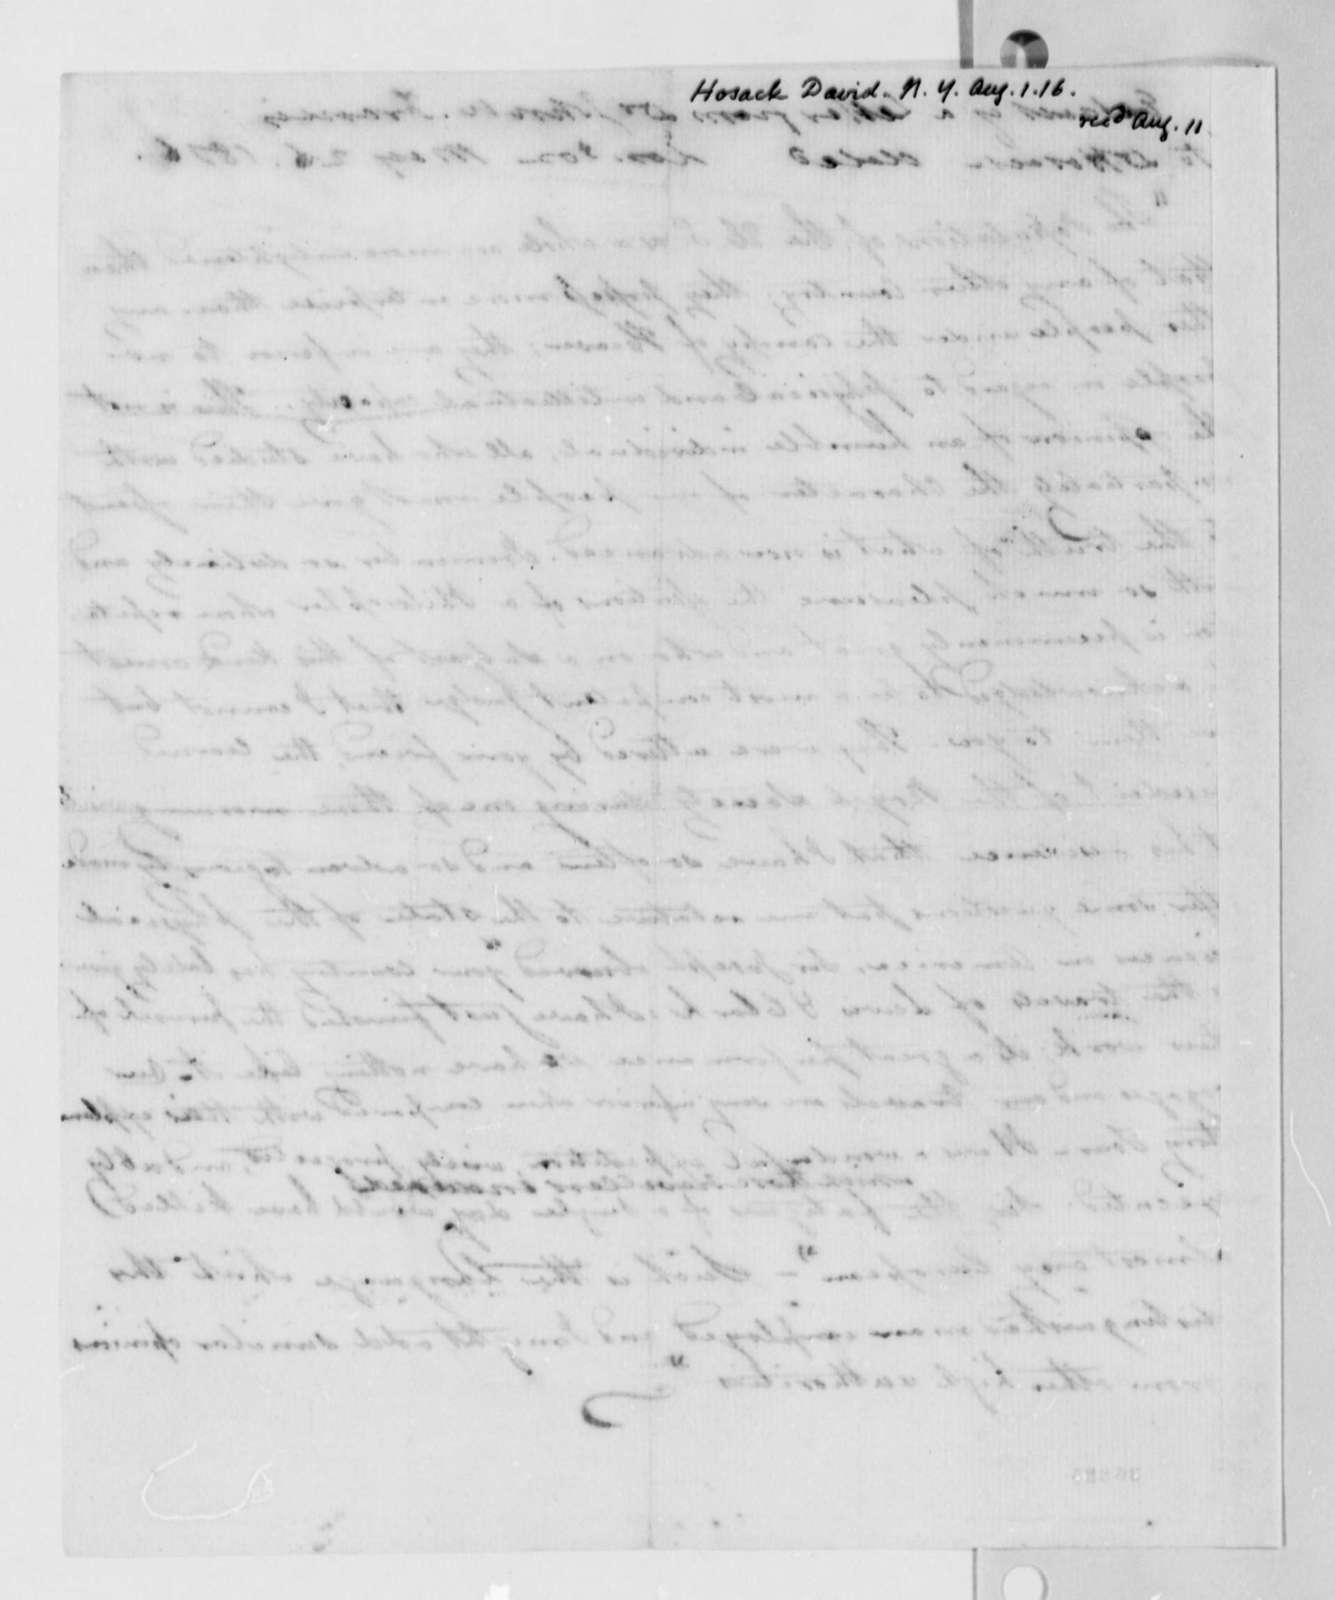 John W. Francis to David Hosack, May 26, 1816